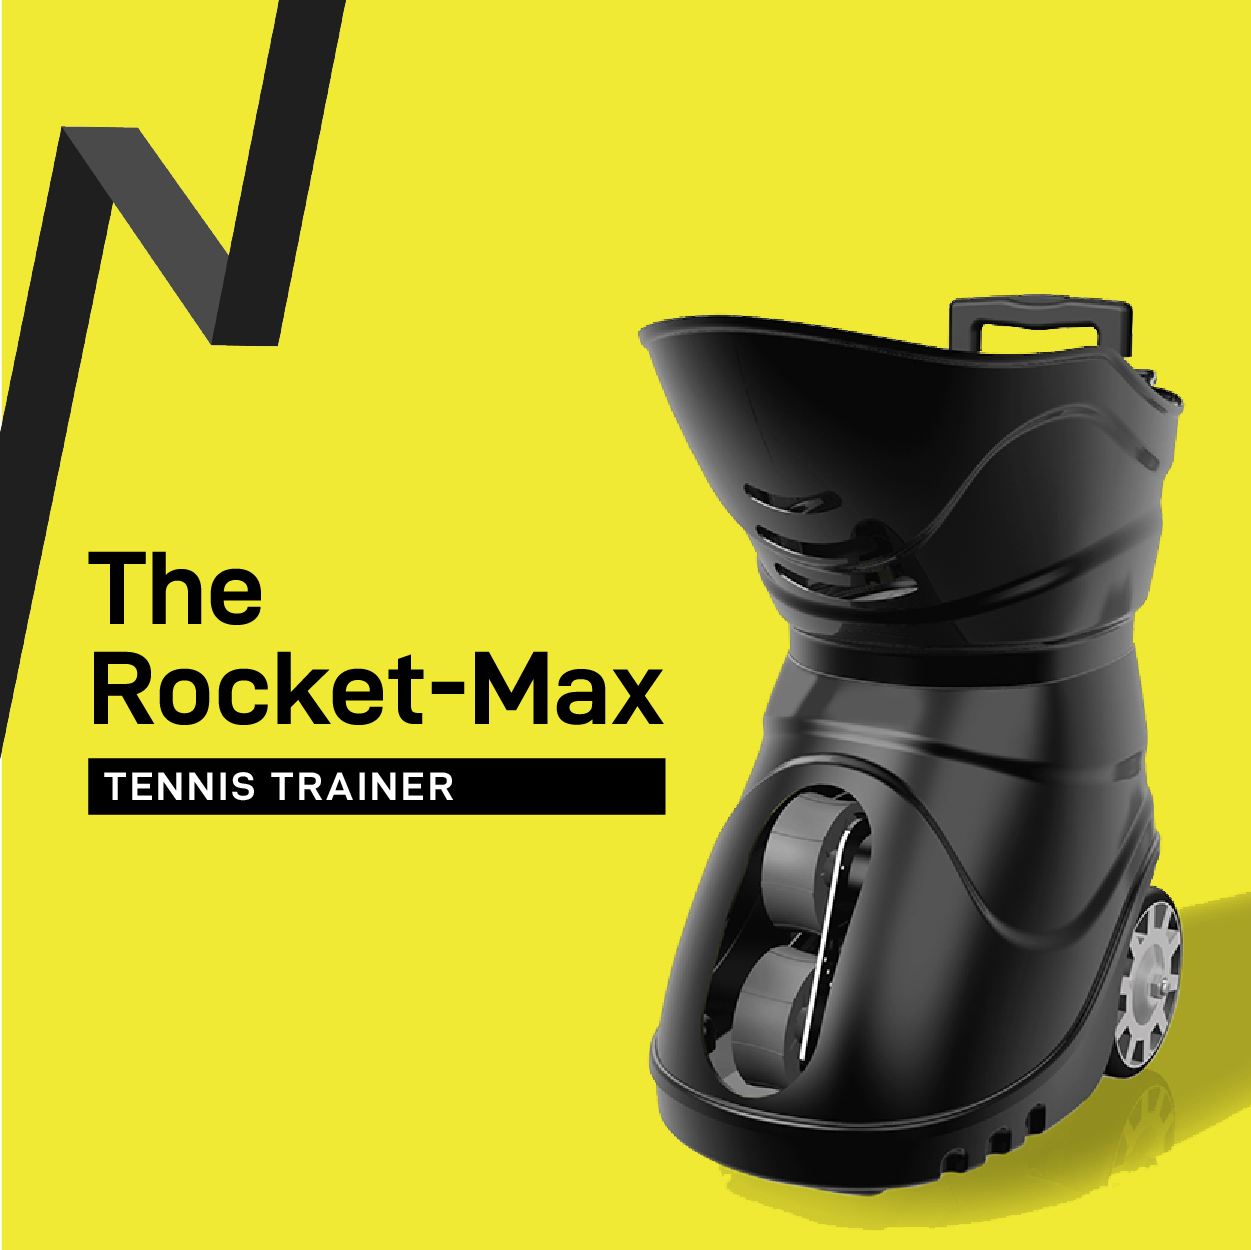 The Rocket Max Tennis Trainer